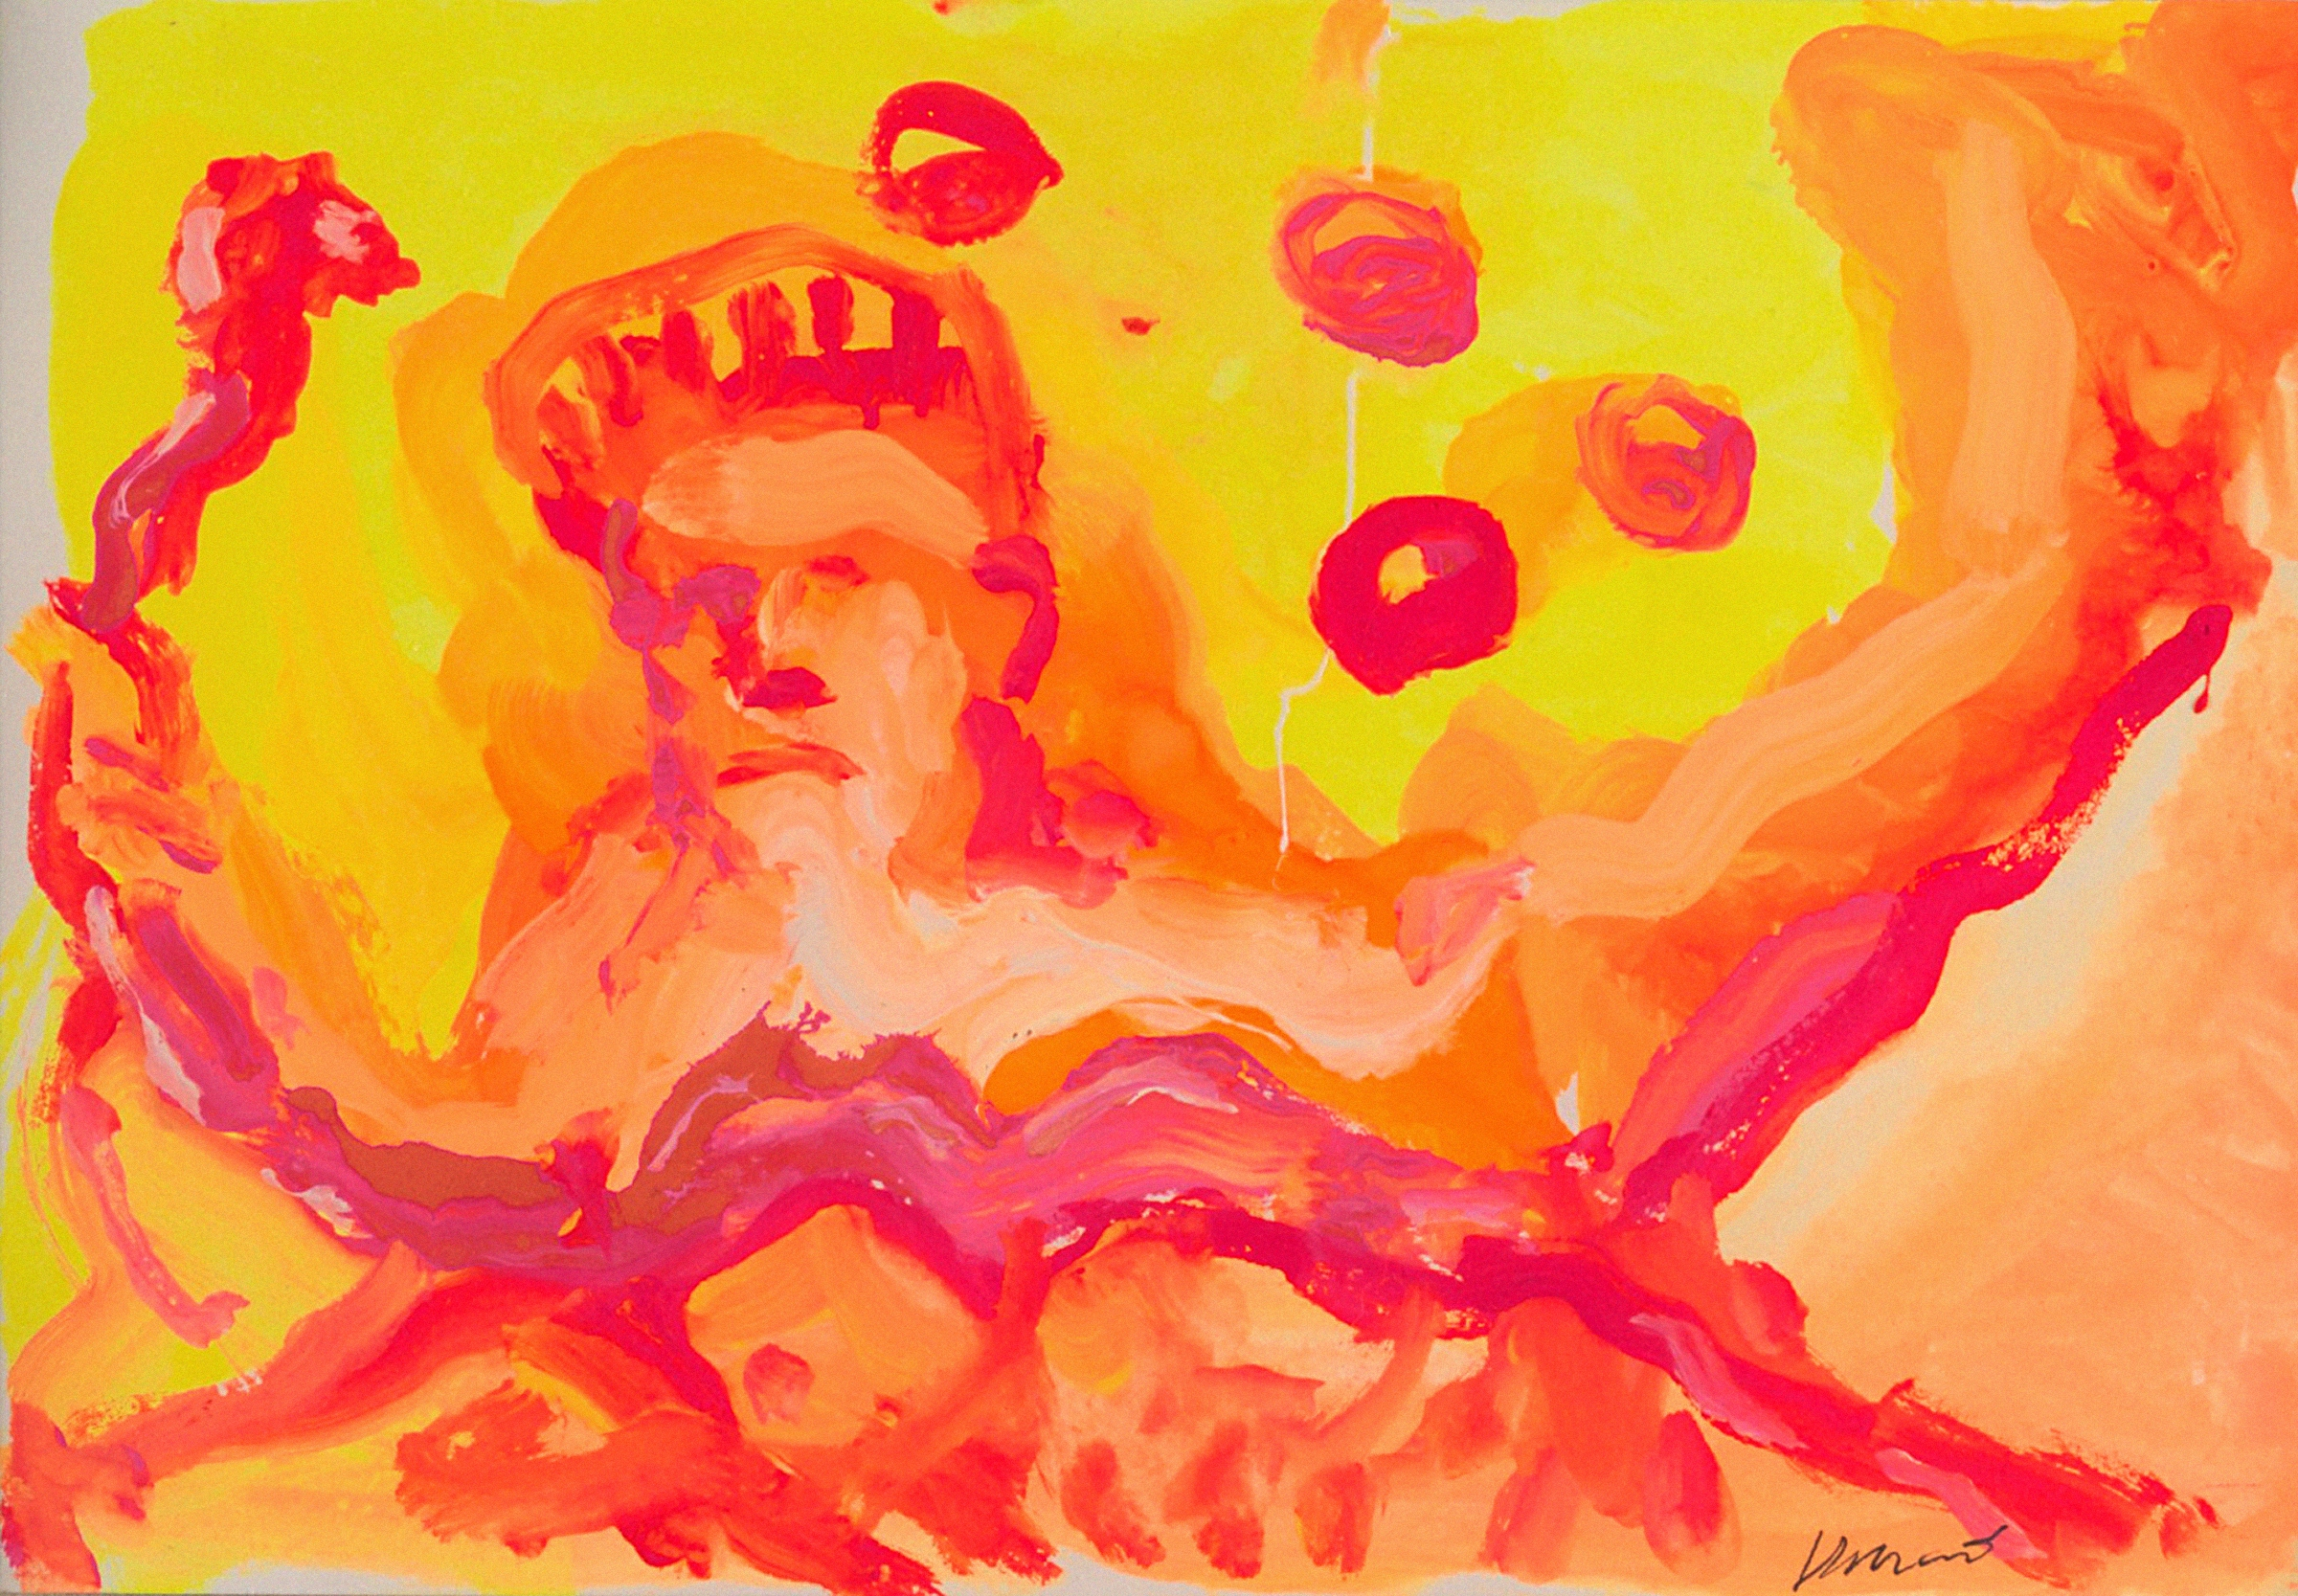 Lot 356 - A JERRY GARCIA WATERCOLOR TITLED 'SNAKE IN JUGGLING SHOW' circa 1990